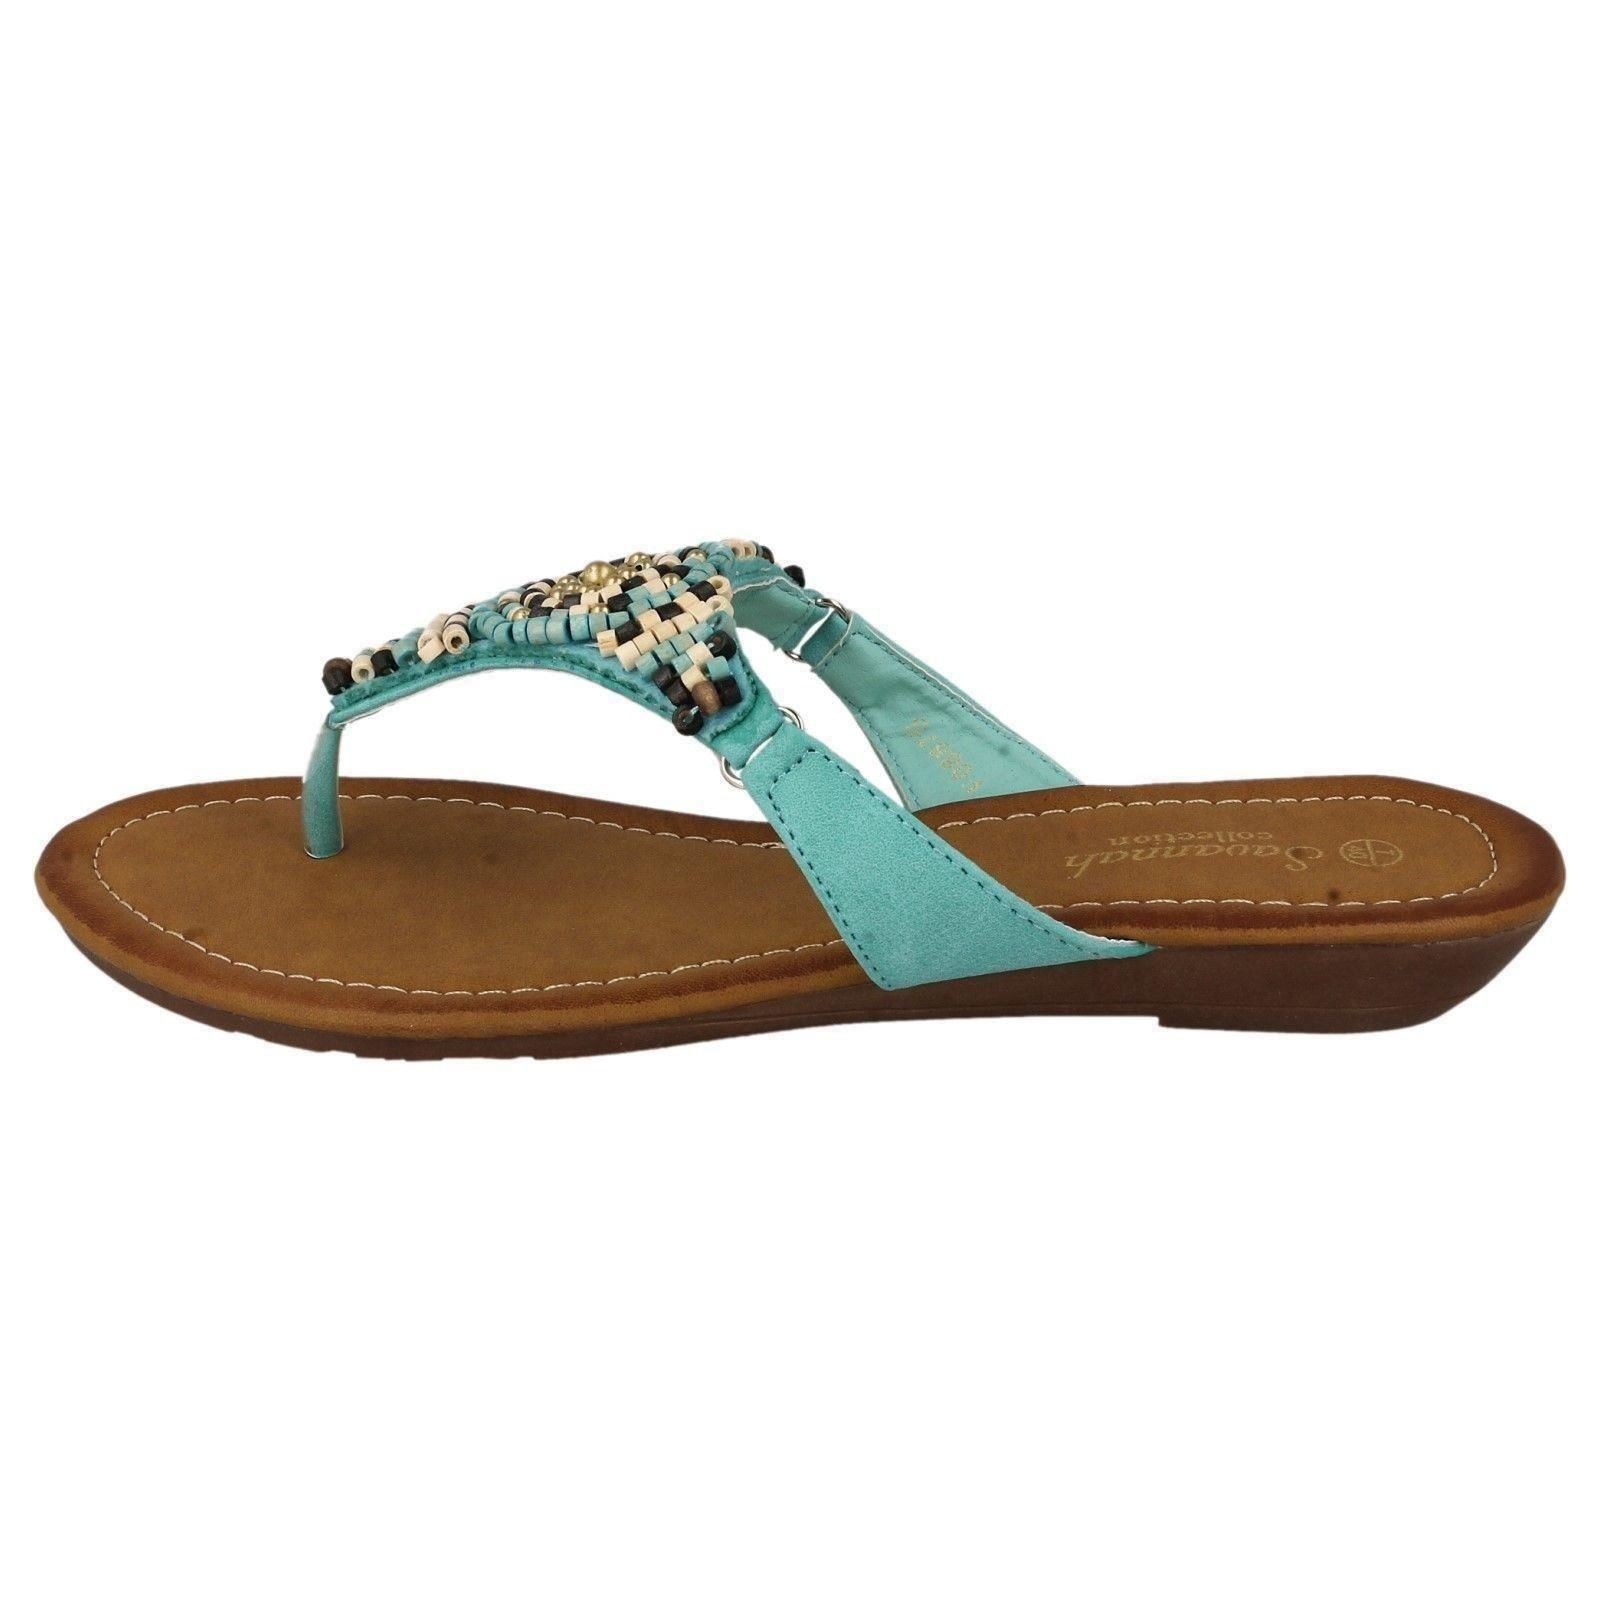 Señoras Savannah f0887 Toe Post Sandalia